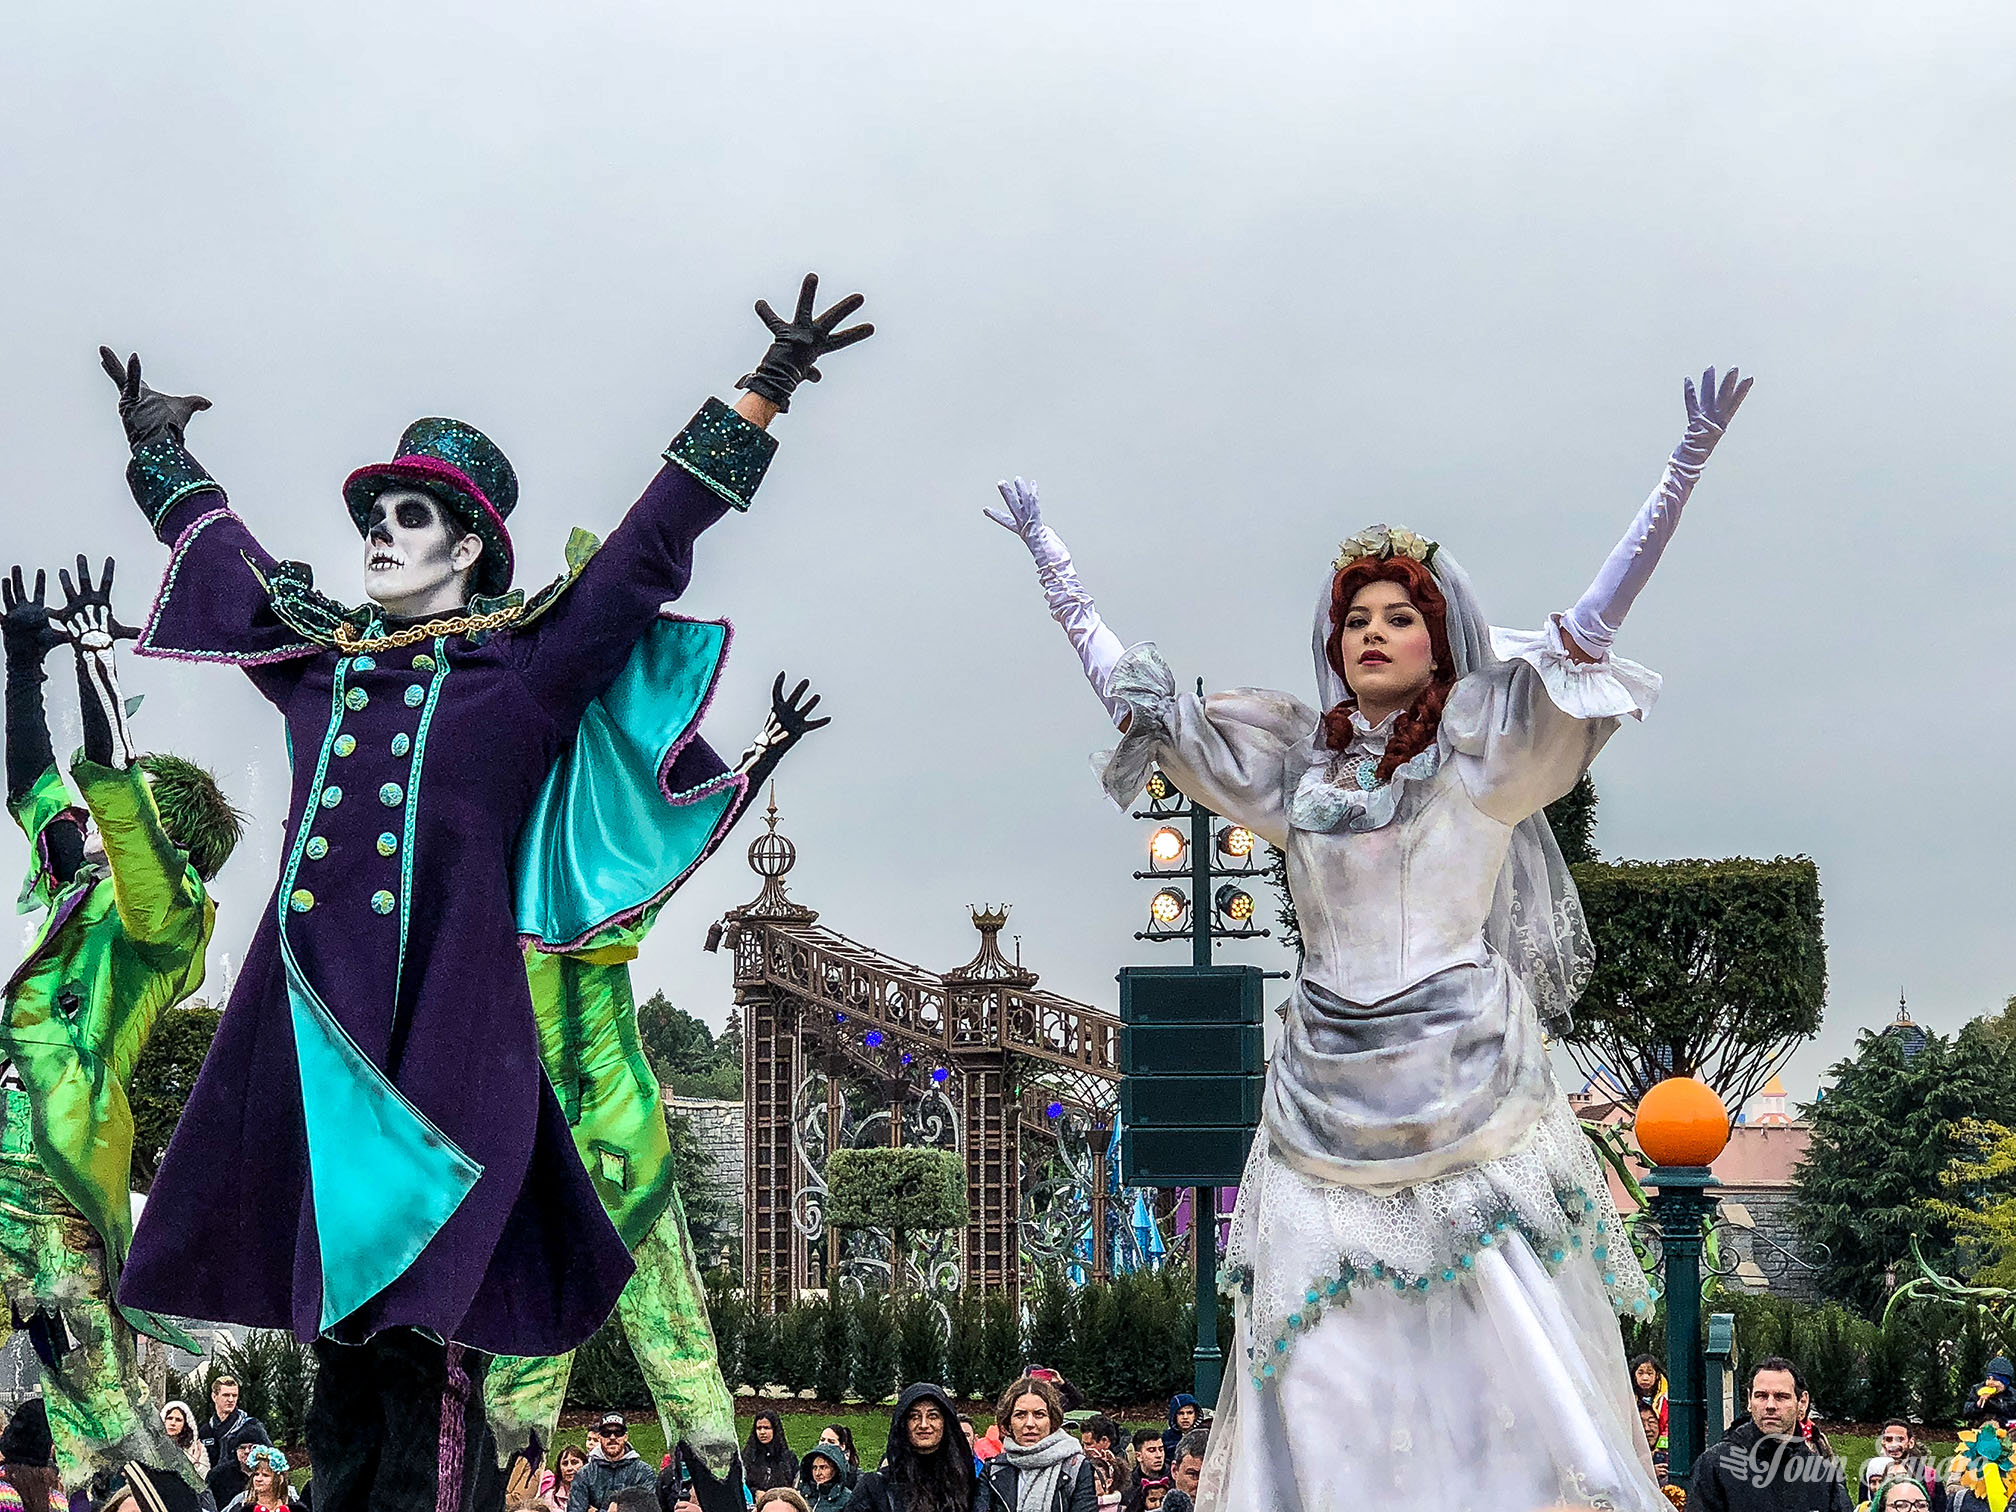 Mickey's Halloween Celebration during the Halloween season at Disneyland Paris